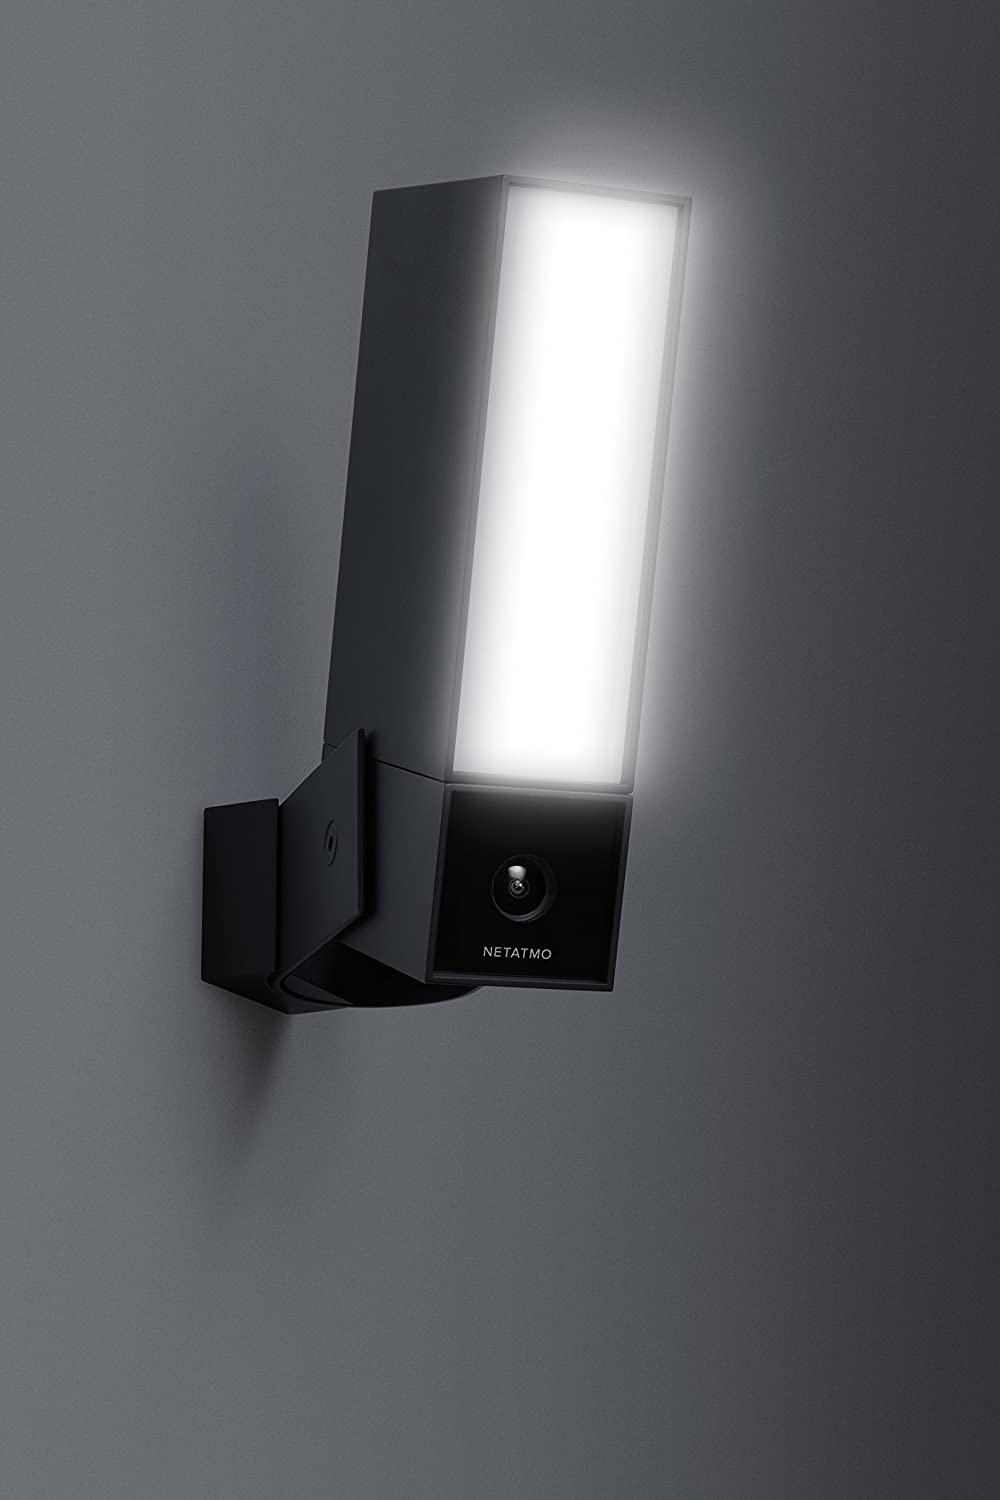 Smart Outdoor Security With Integrated Floodlight And Alerts Netatmo Presence Co Uk Diy Tools